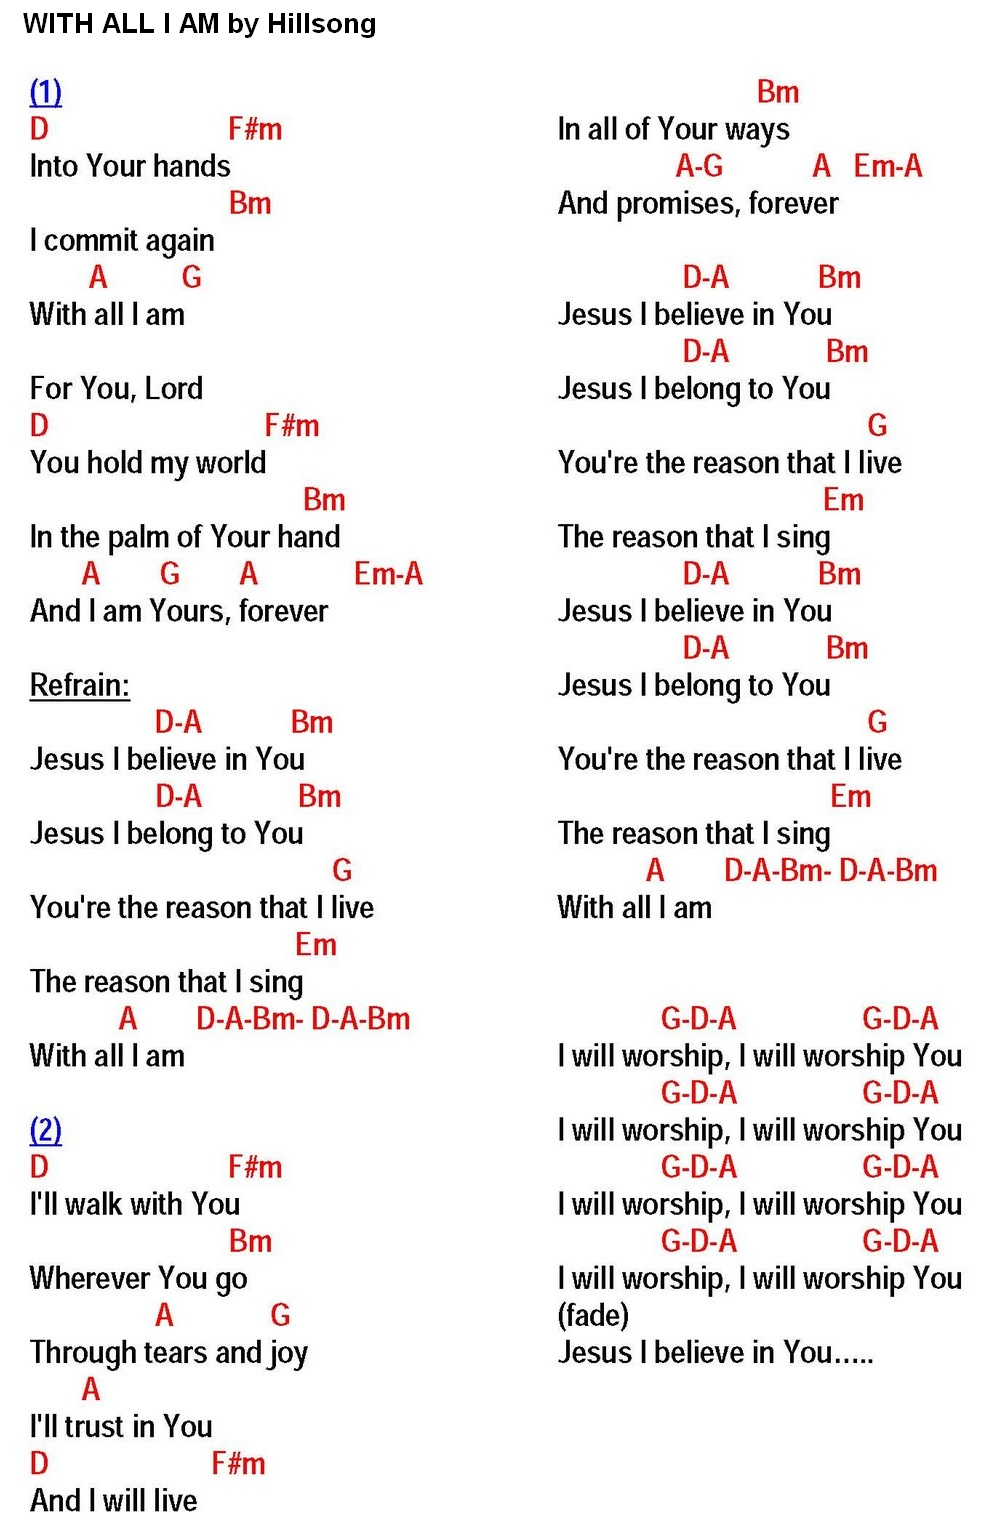 With all i am hillsong lyrics and chords sing and praise click on lyrics chords to enlarge or print hexwebz Image collections